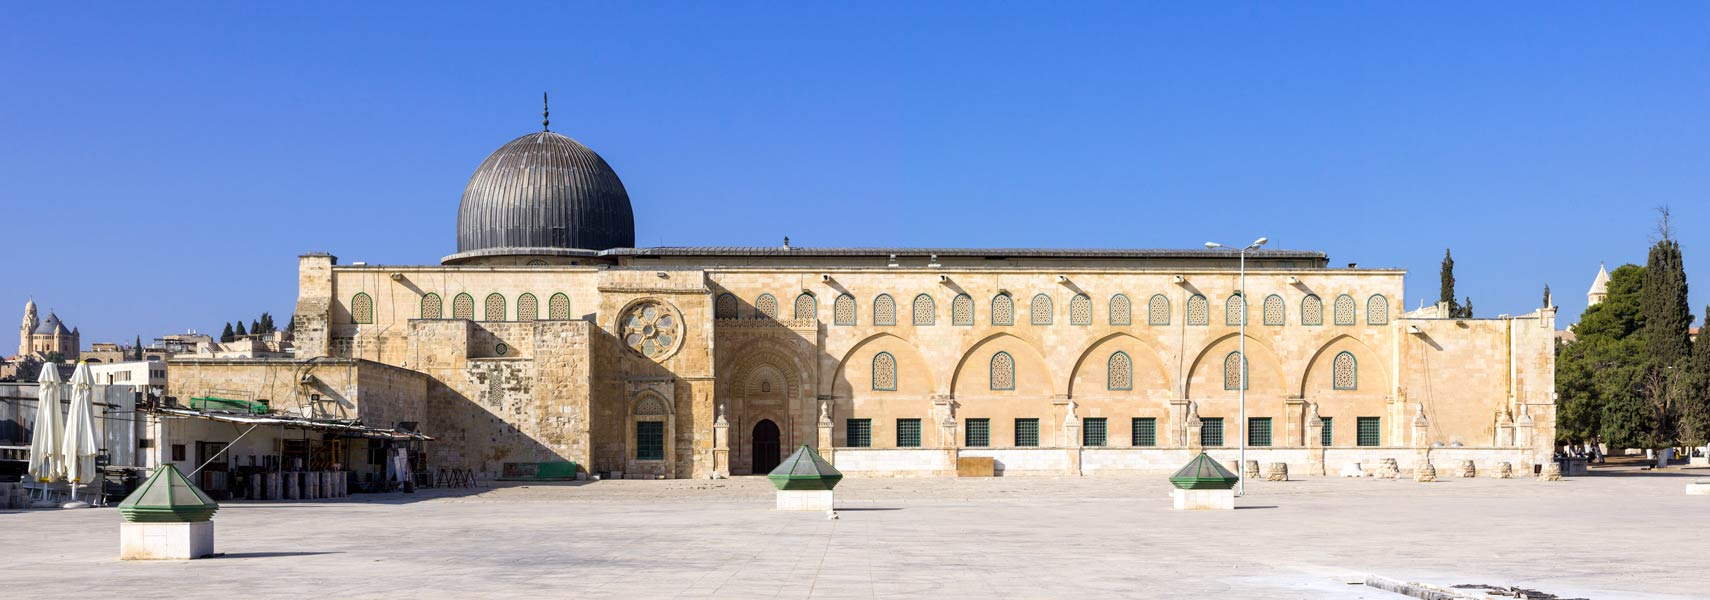 Al-Aqsa Mosque on the Temple Mount in the Old City of East Jerusalem